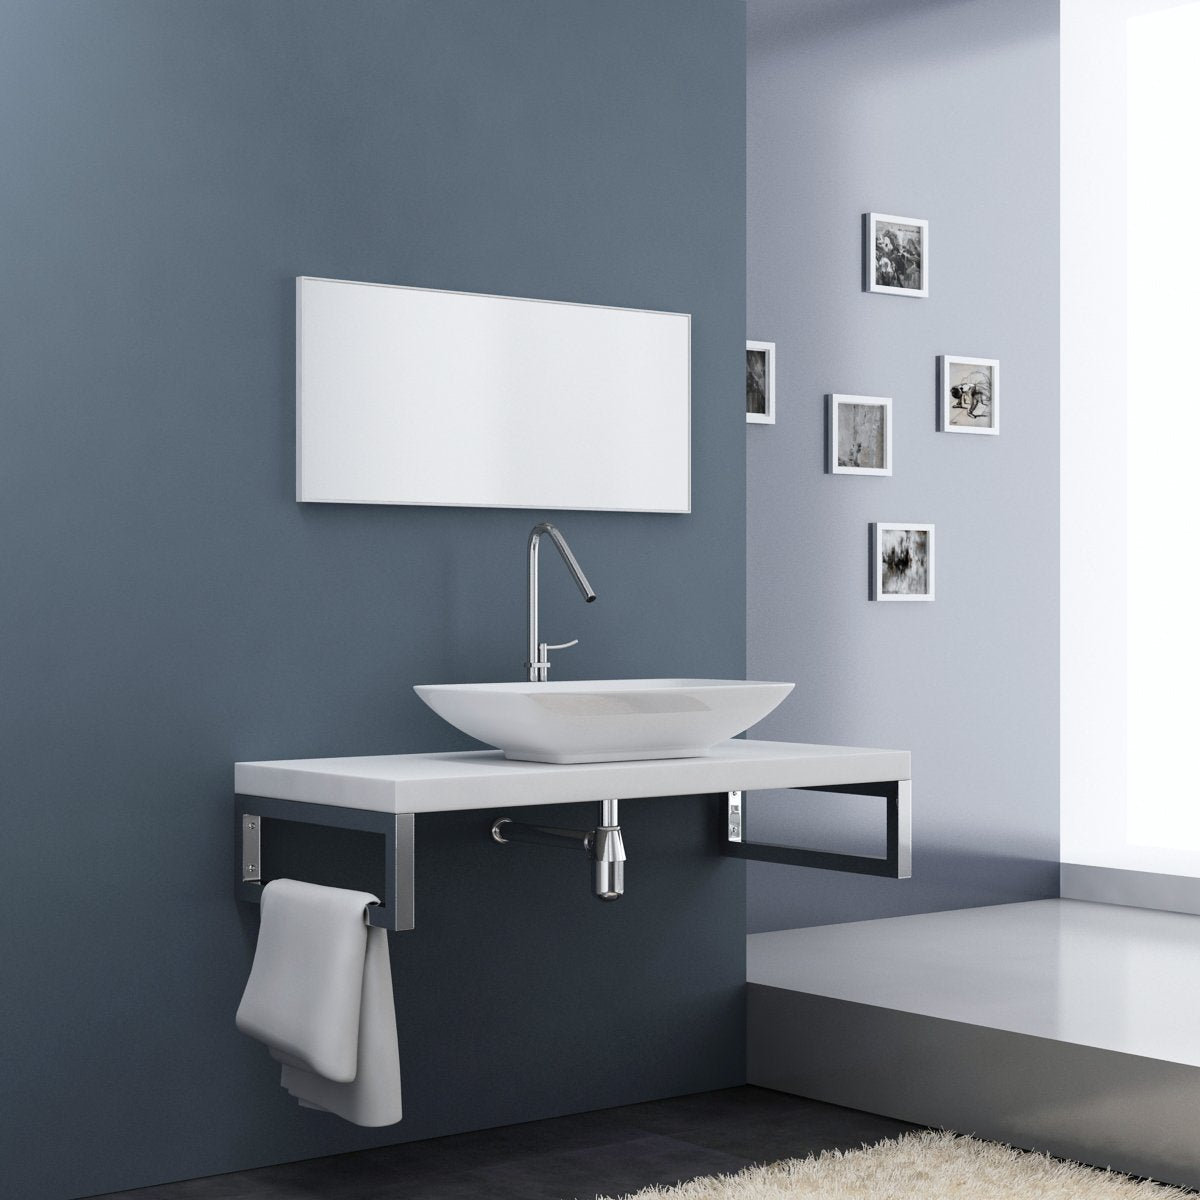 Ferrara Resin Stone Counter Top Wall Hung Basin Shelf with Stainless Steel Brackets